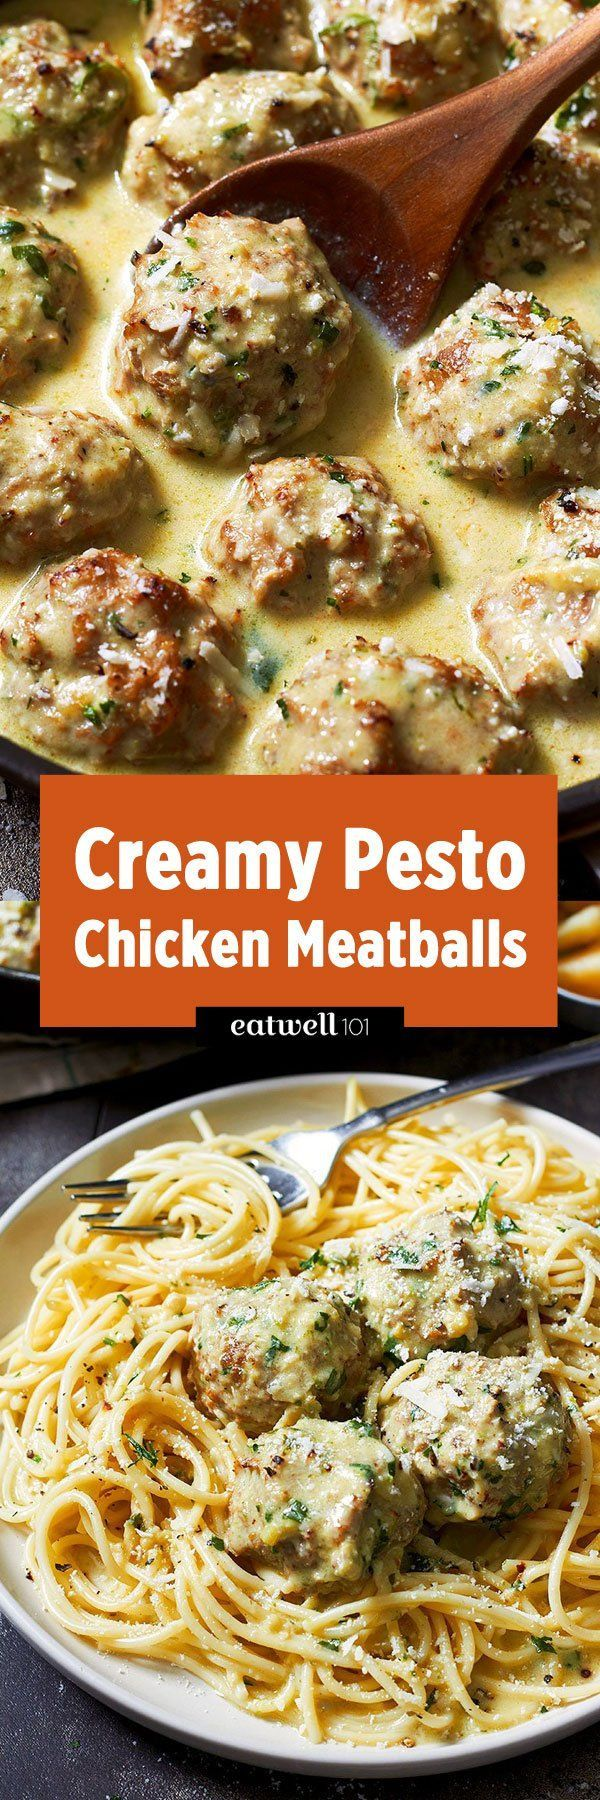 Creamy chicken meatballs - It's comfort food at its tastiest and you can whip it up in about 30 minutes.